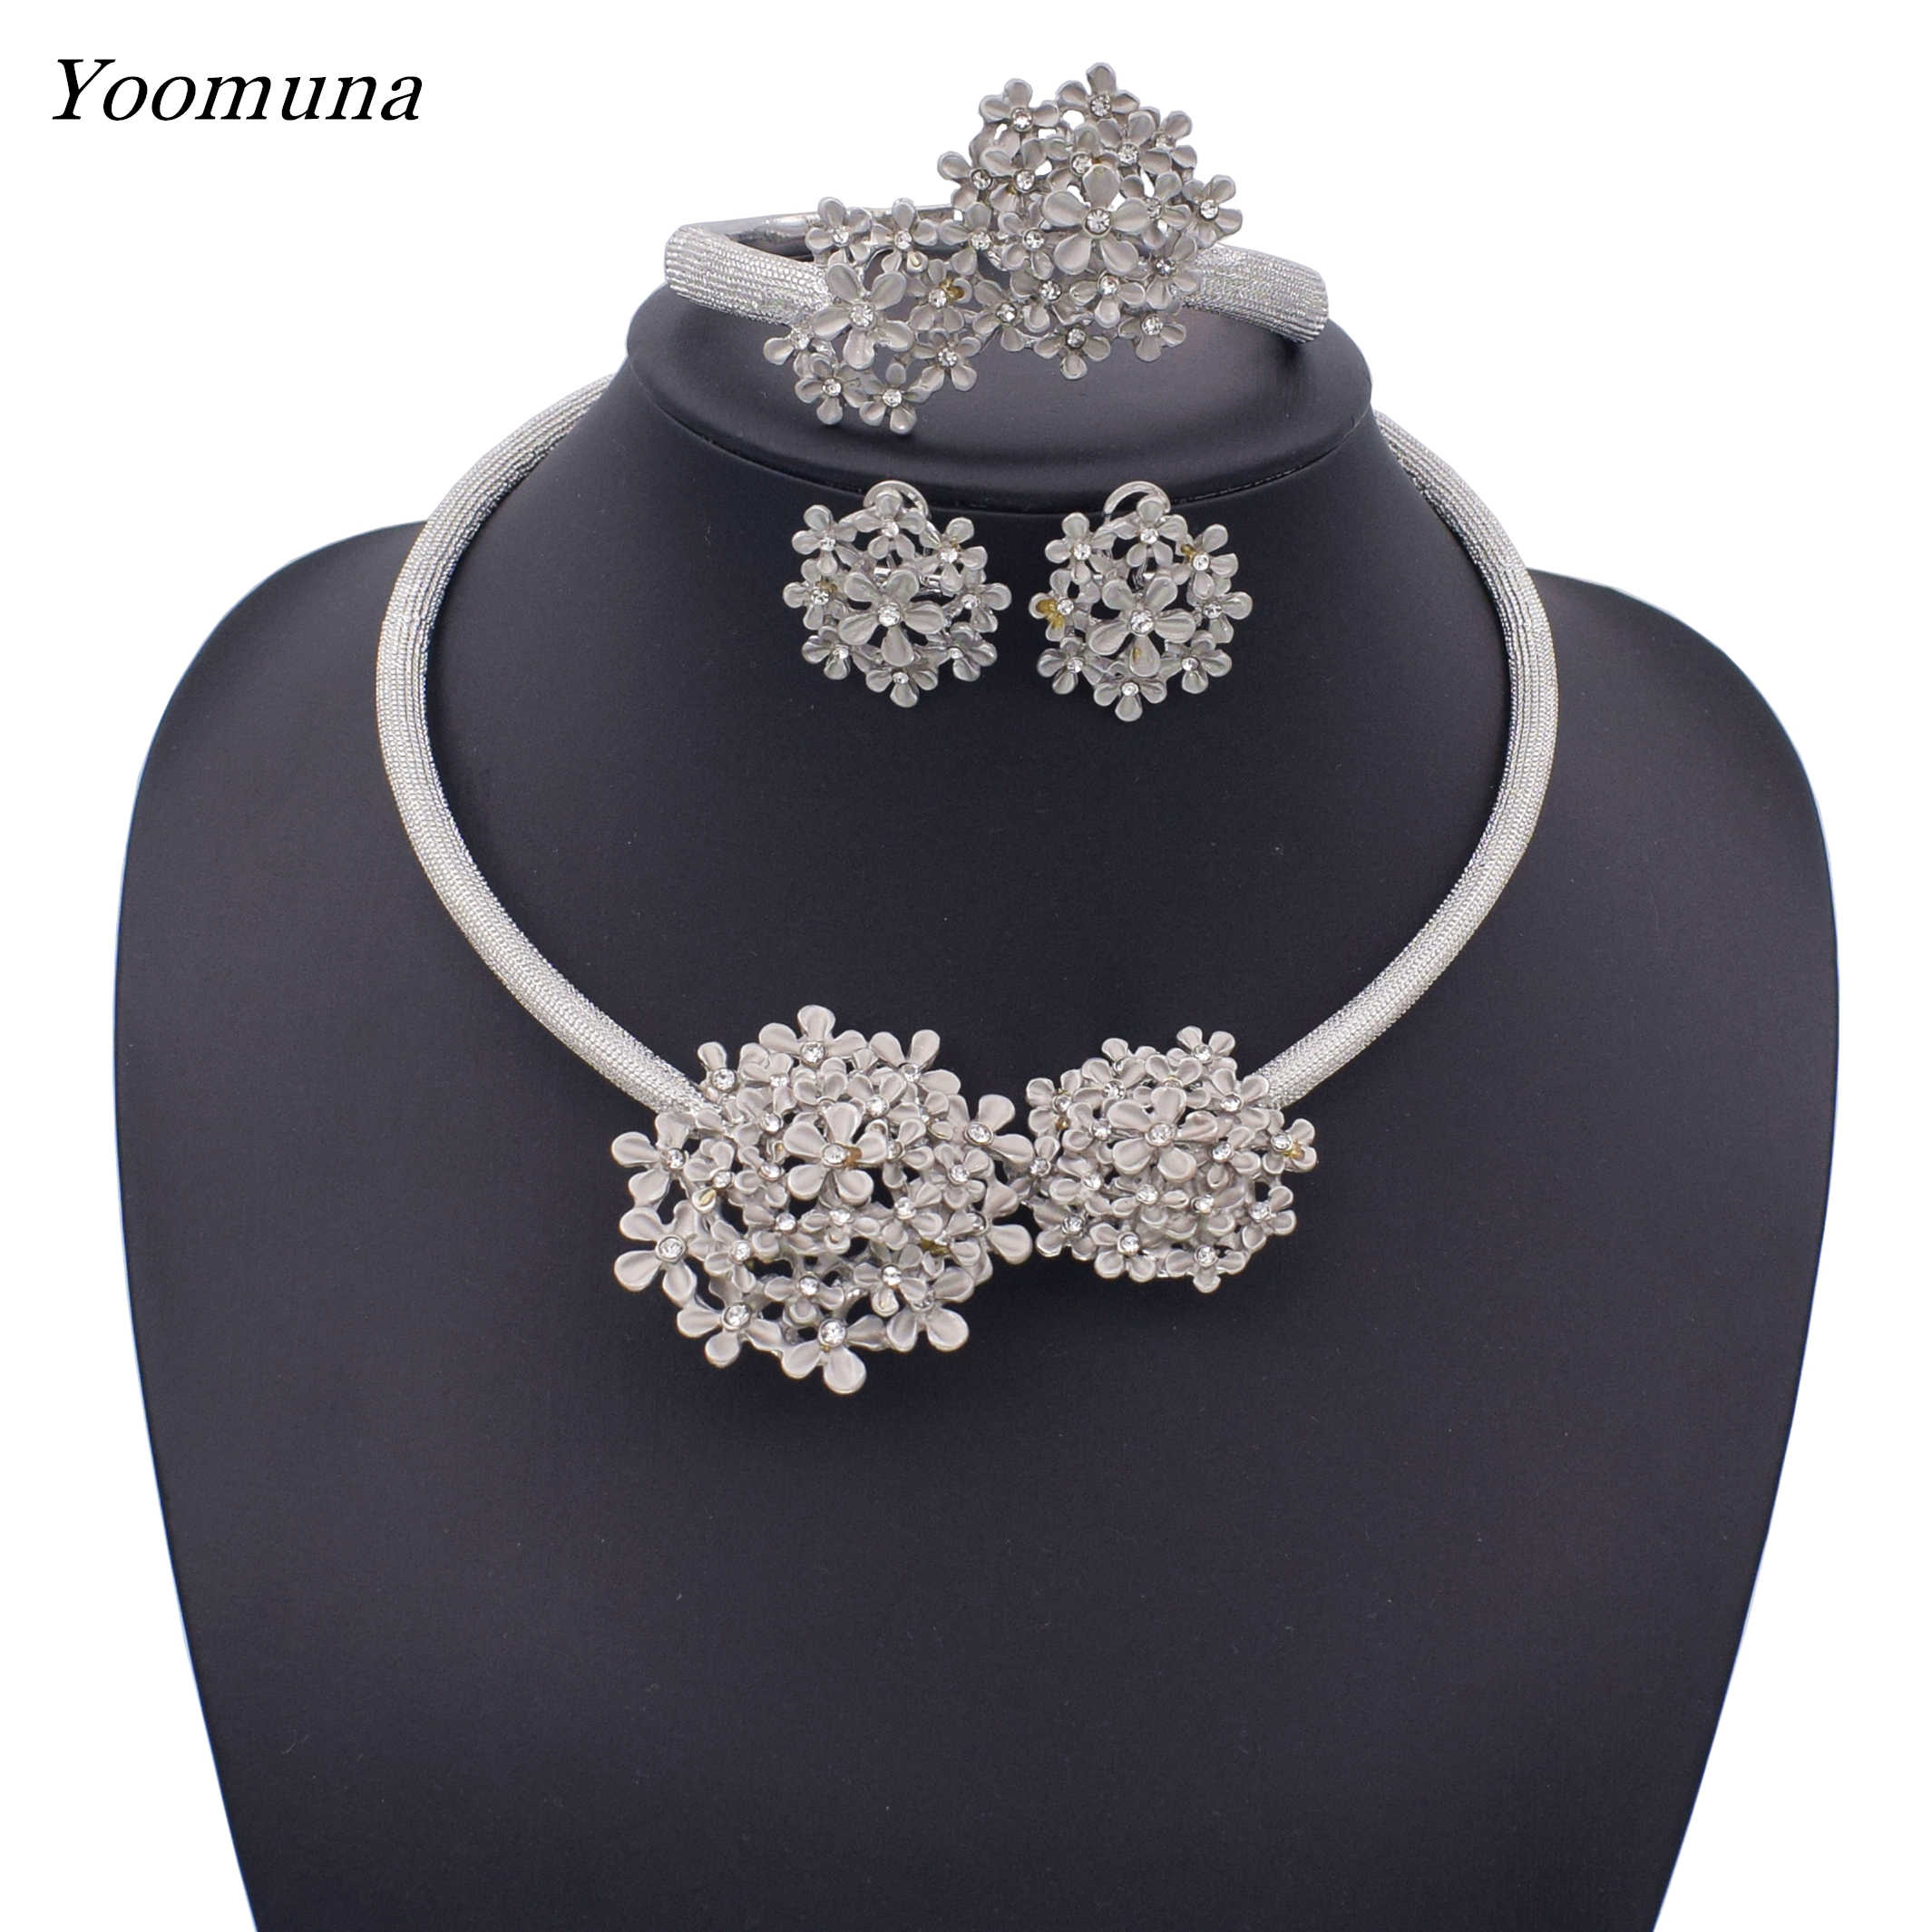 2019 Bridal Nigerian Wedding party Jewelry Set for Women Fashion African Beads Jewelry Set Dubai Gold Jewelry  Design